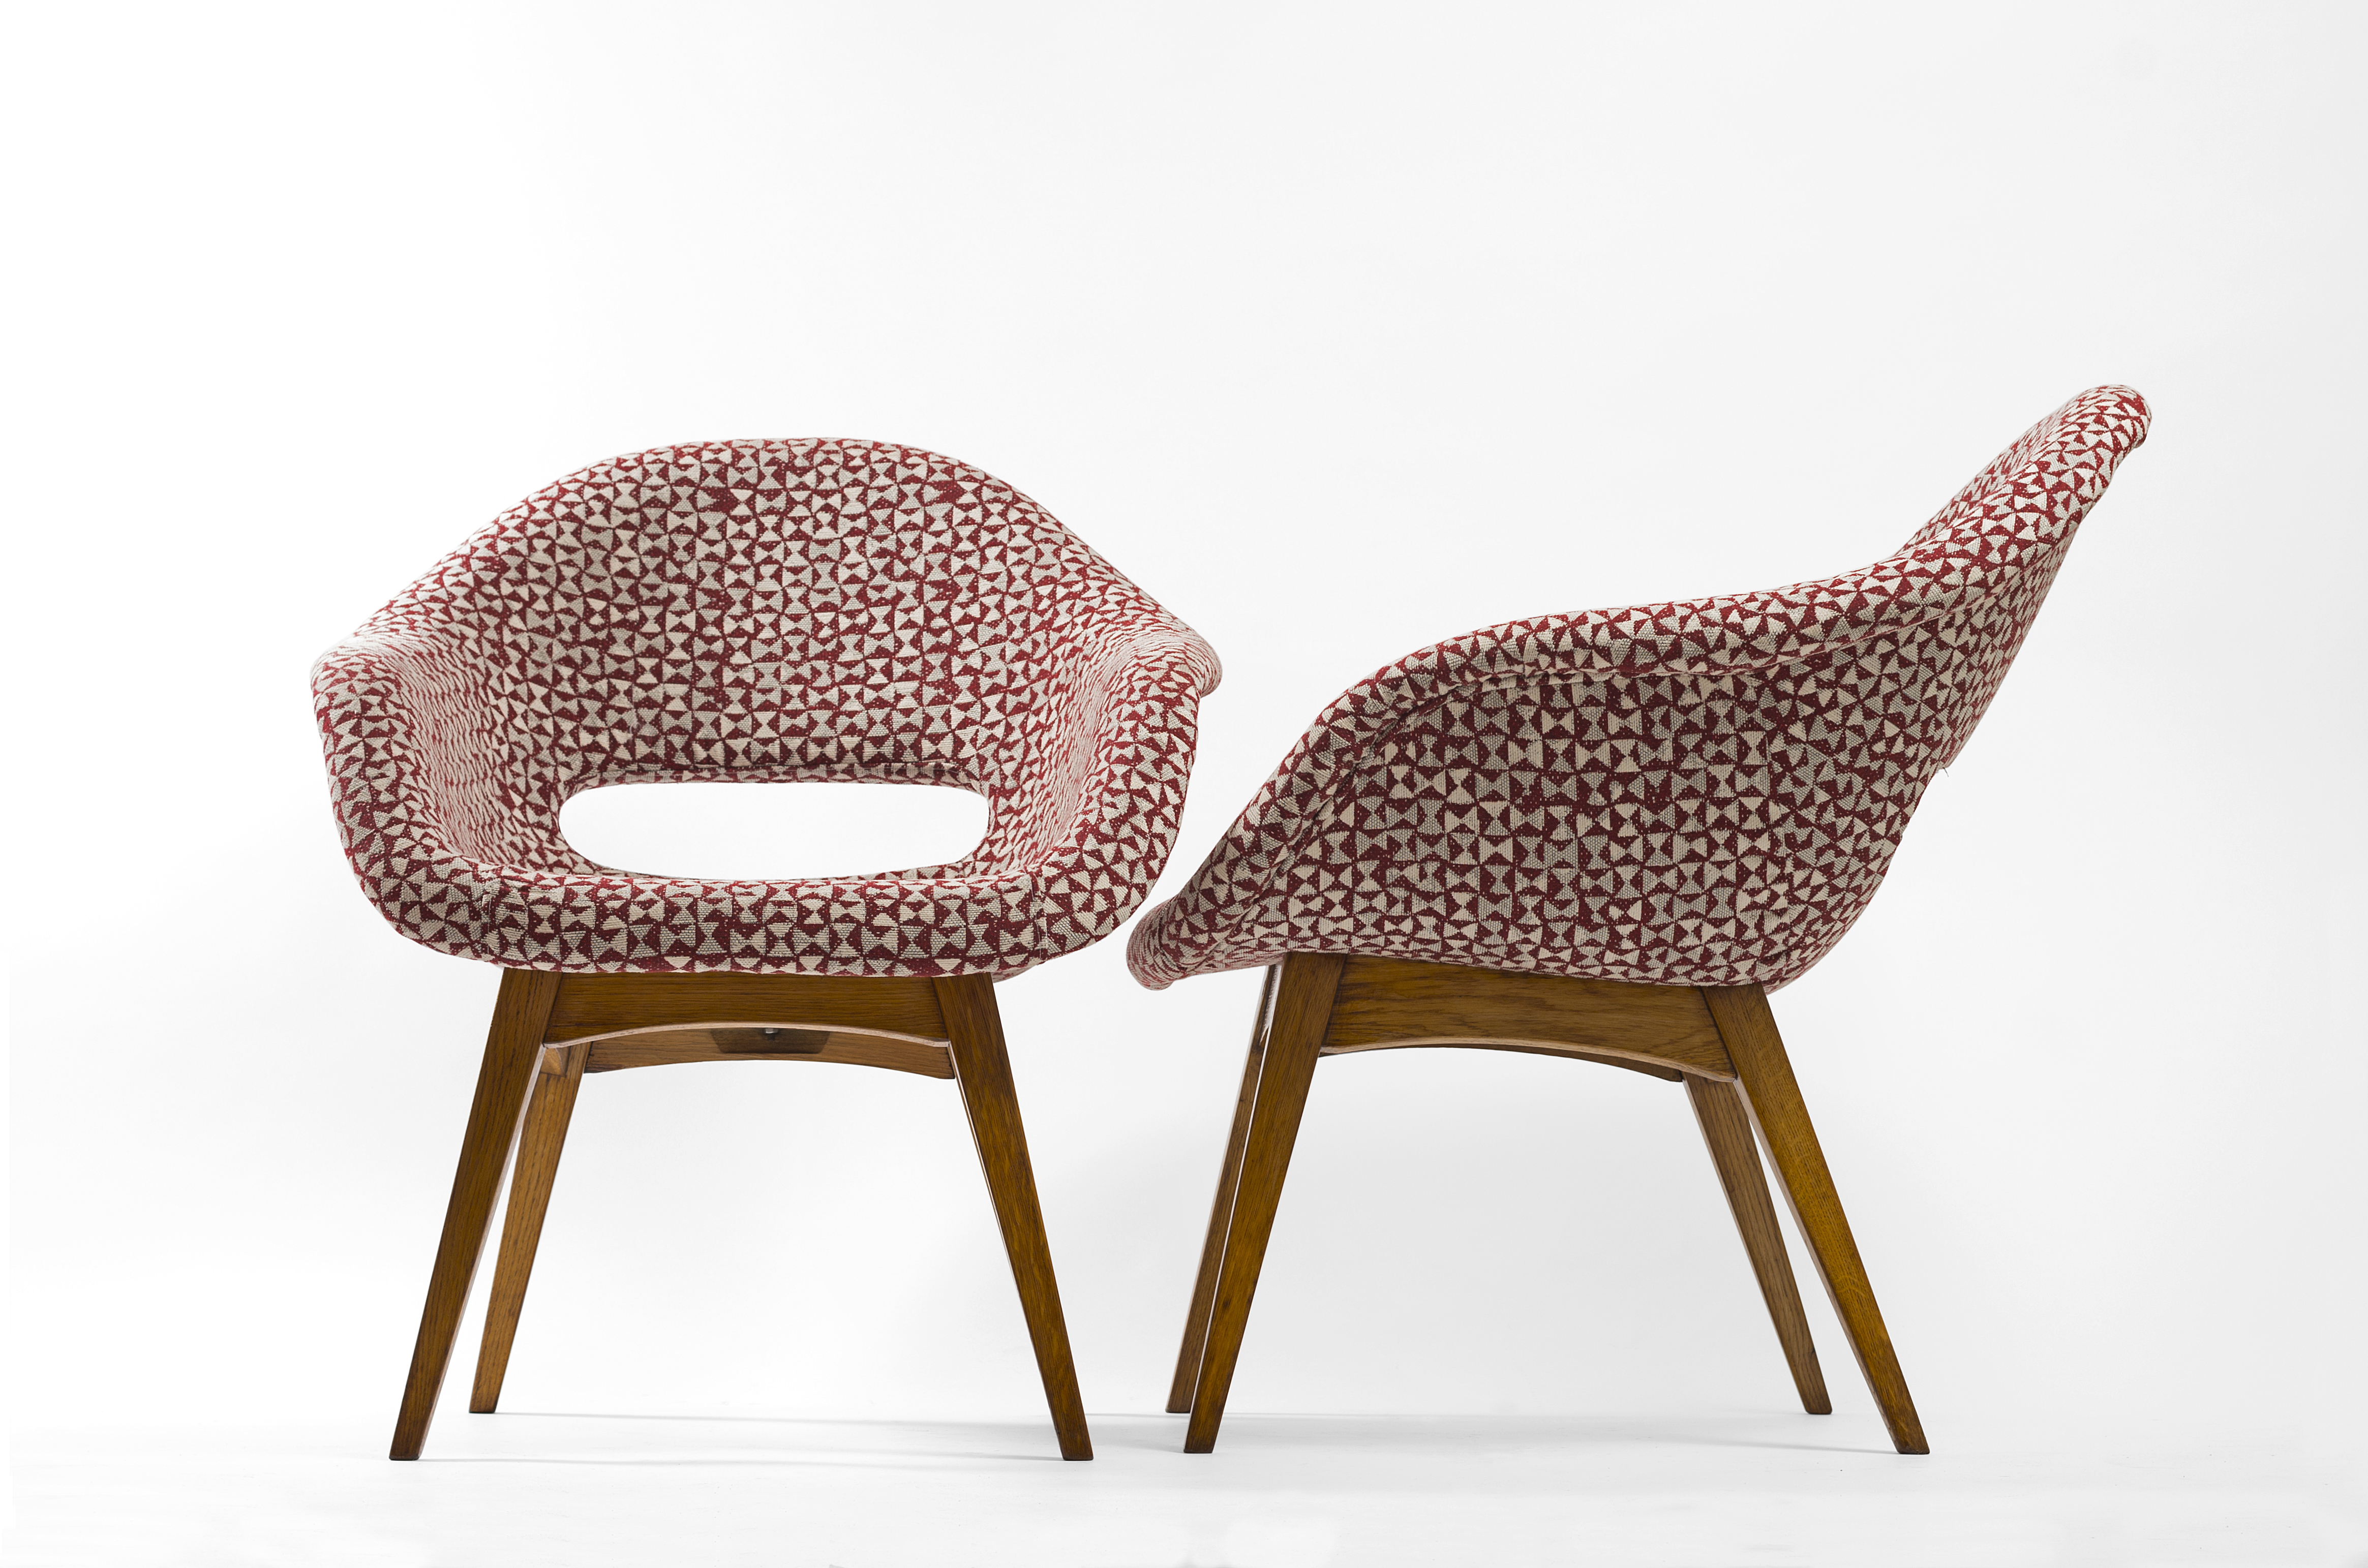 063f97227b9 Pair of fully restored Miroslav Navratil chair from 1960 ...